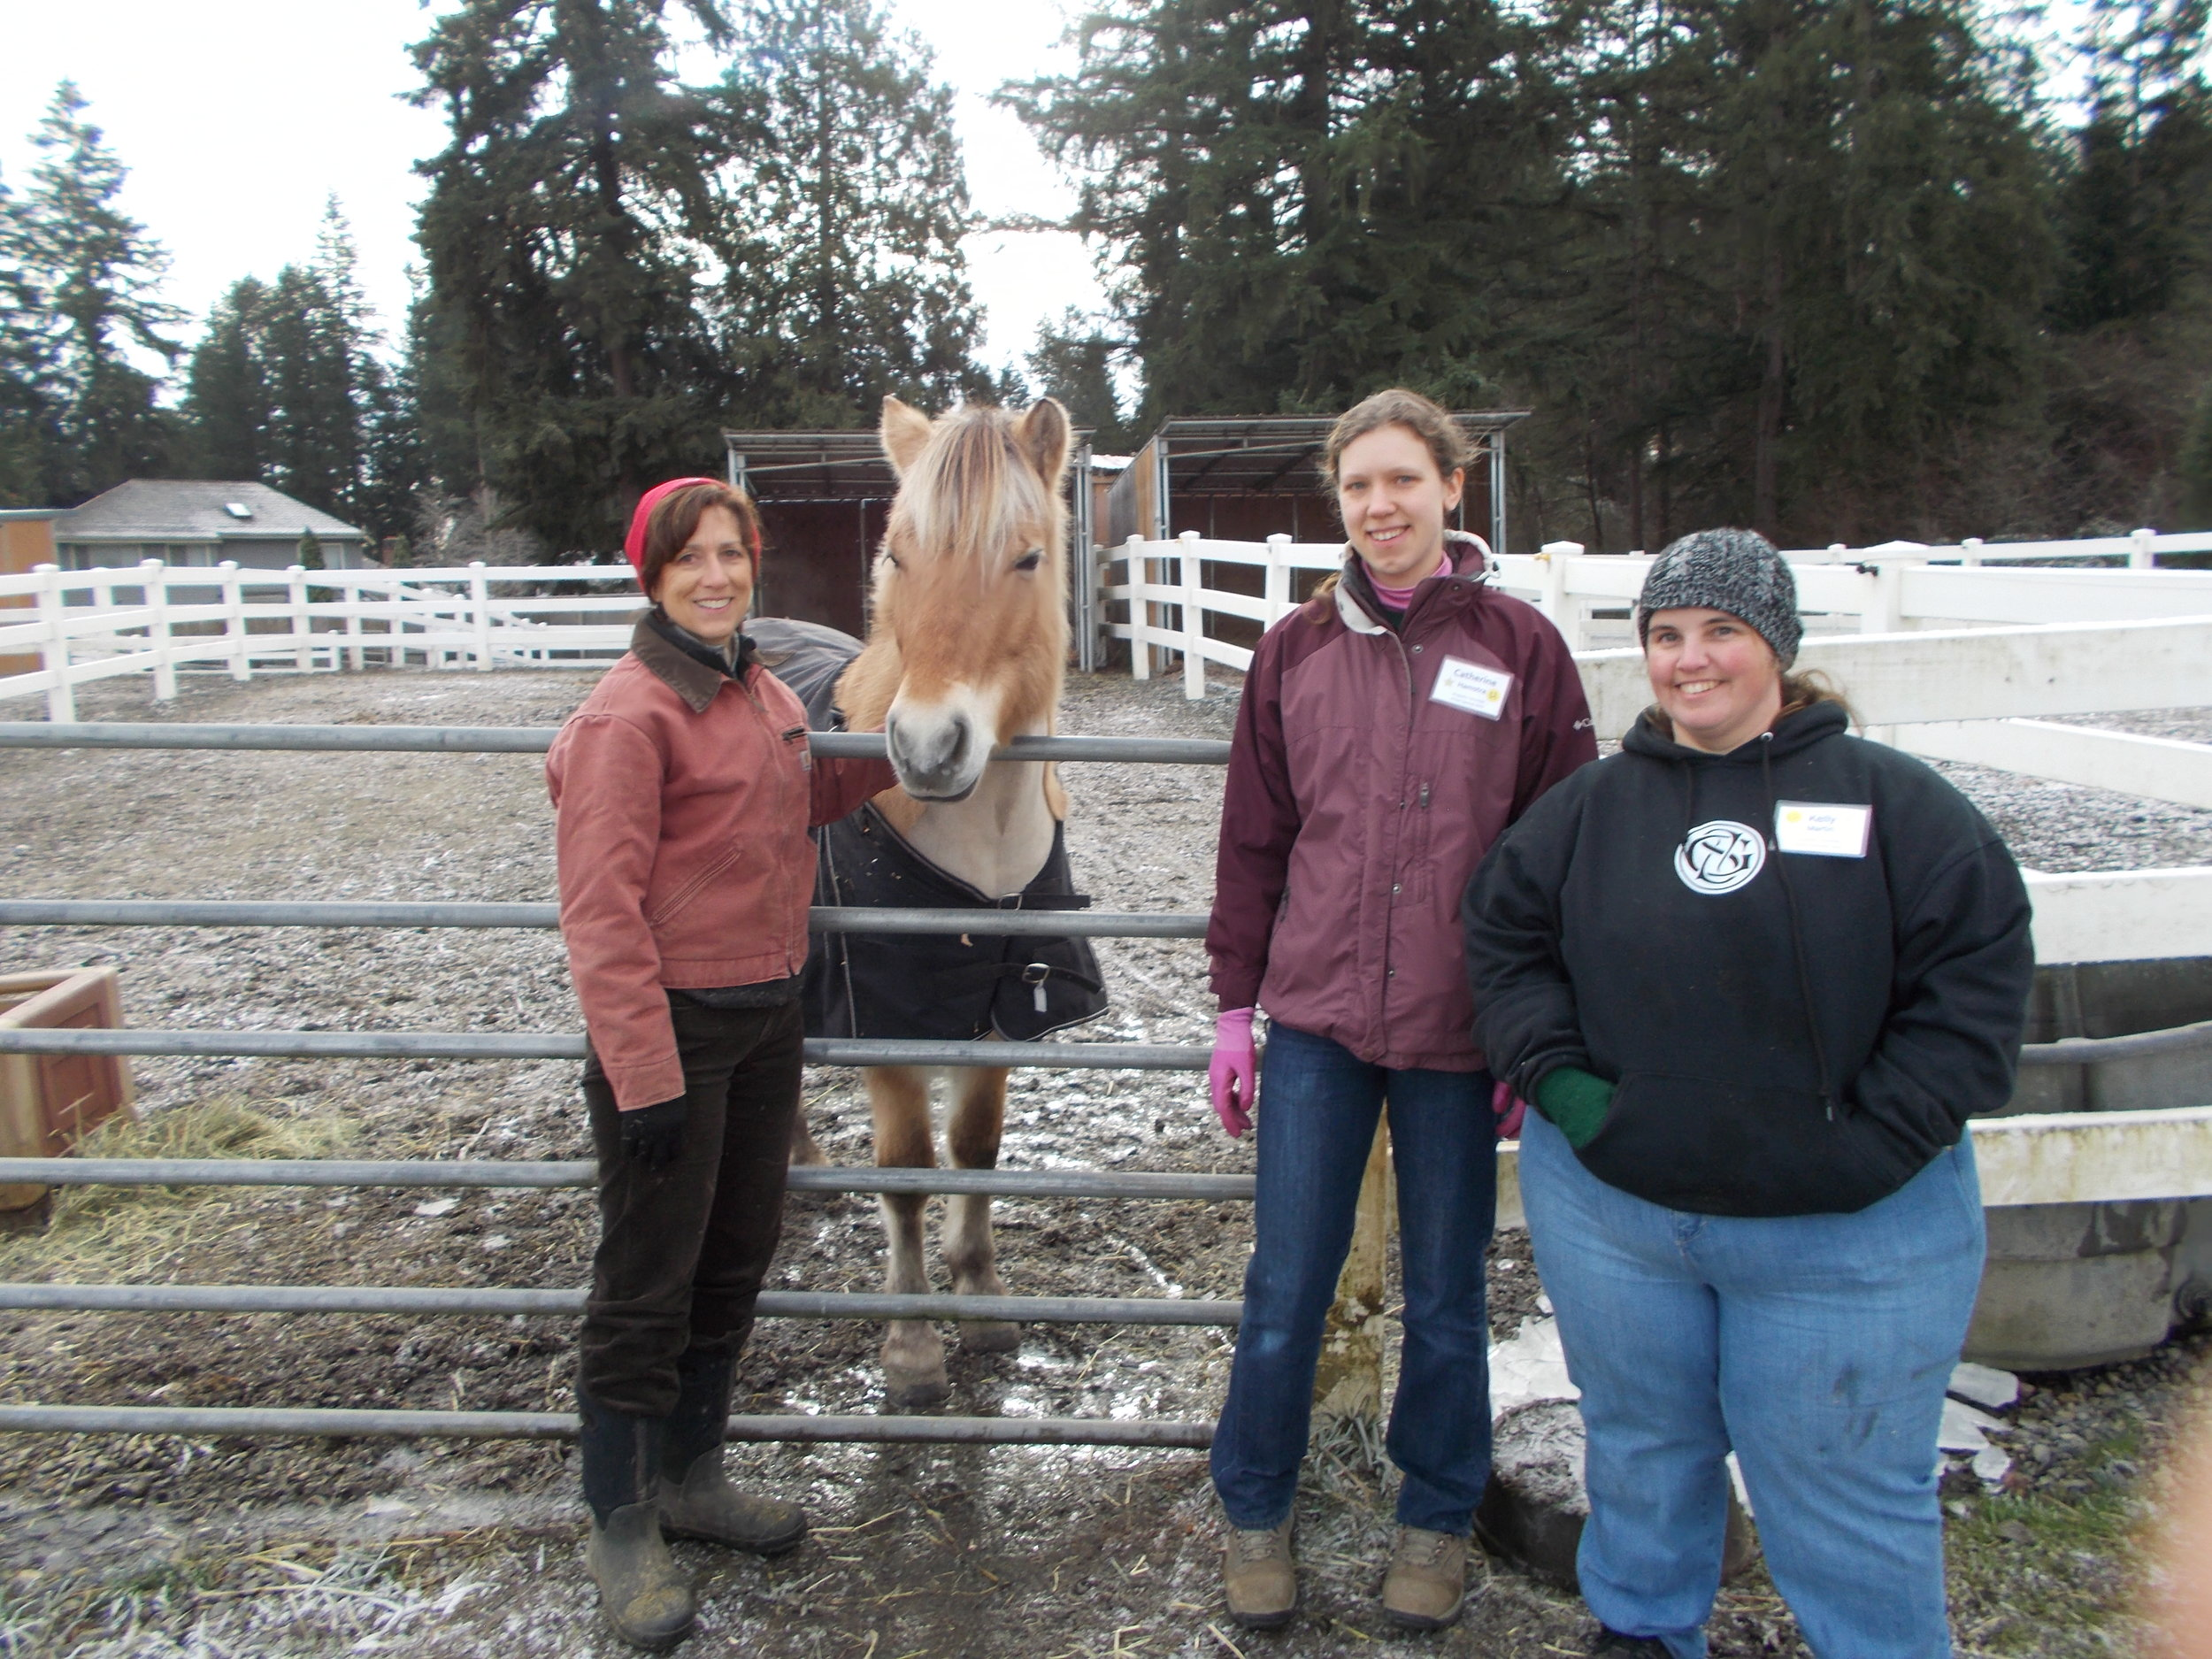 Three volunteers standing next to a tan horse.